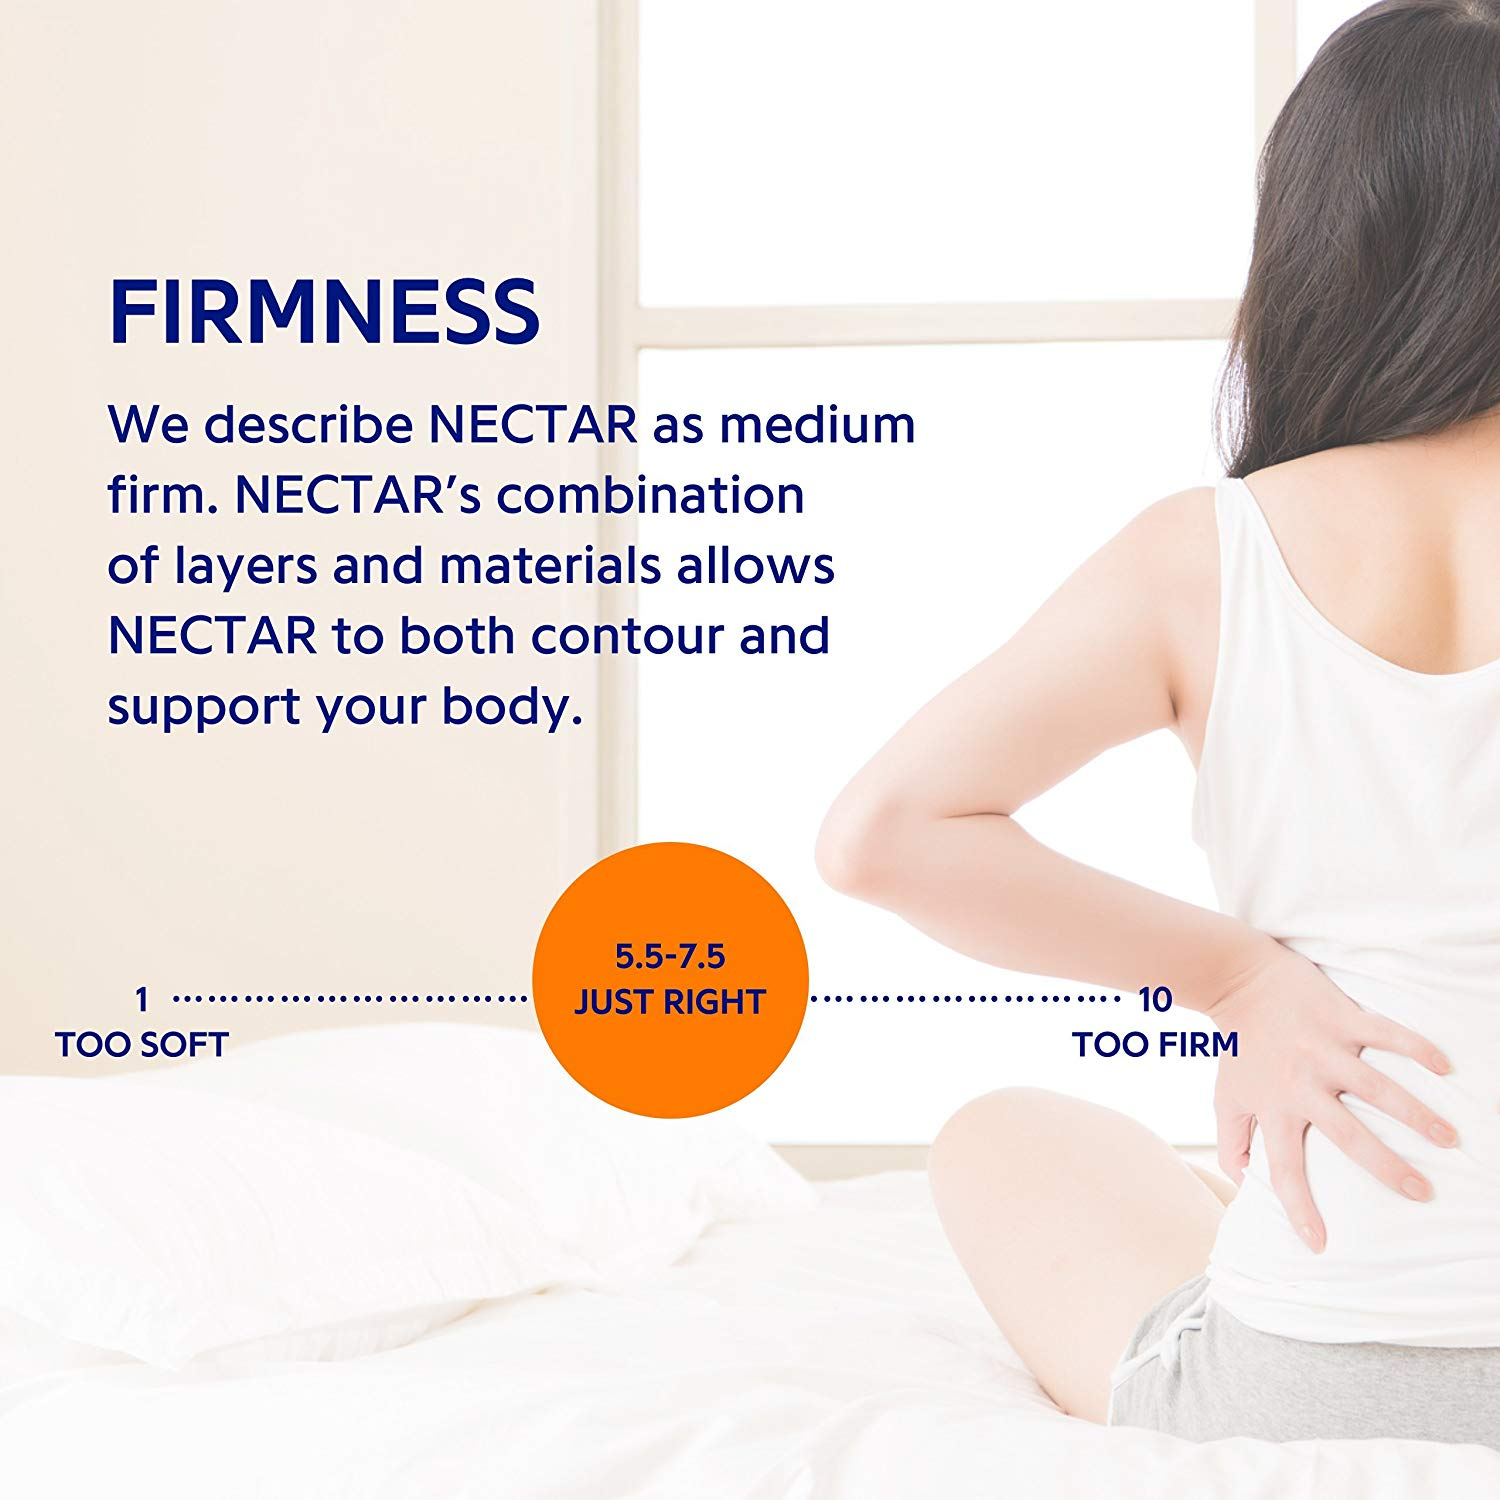 Nectar Firmness - Nectar Vs Tuft and Needle